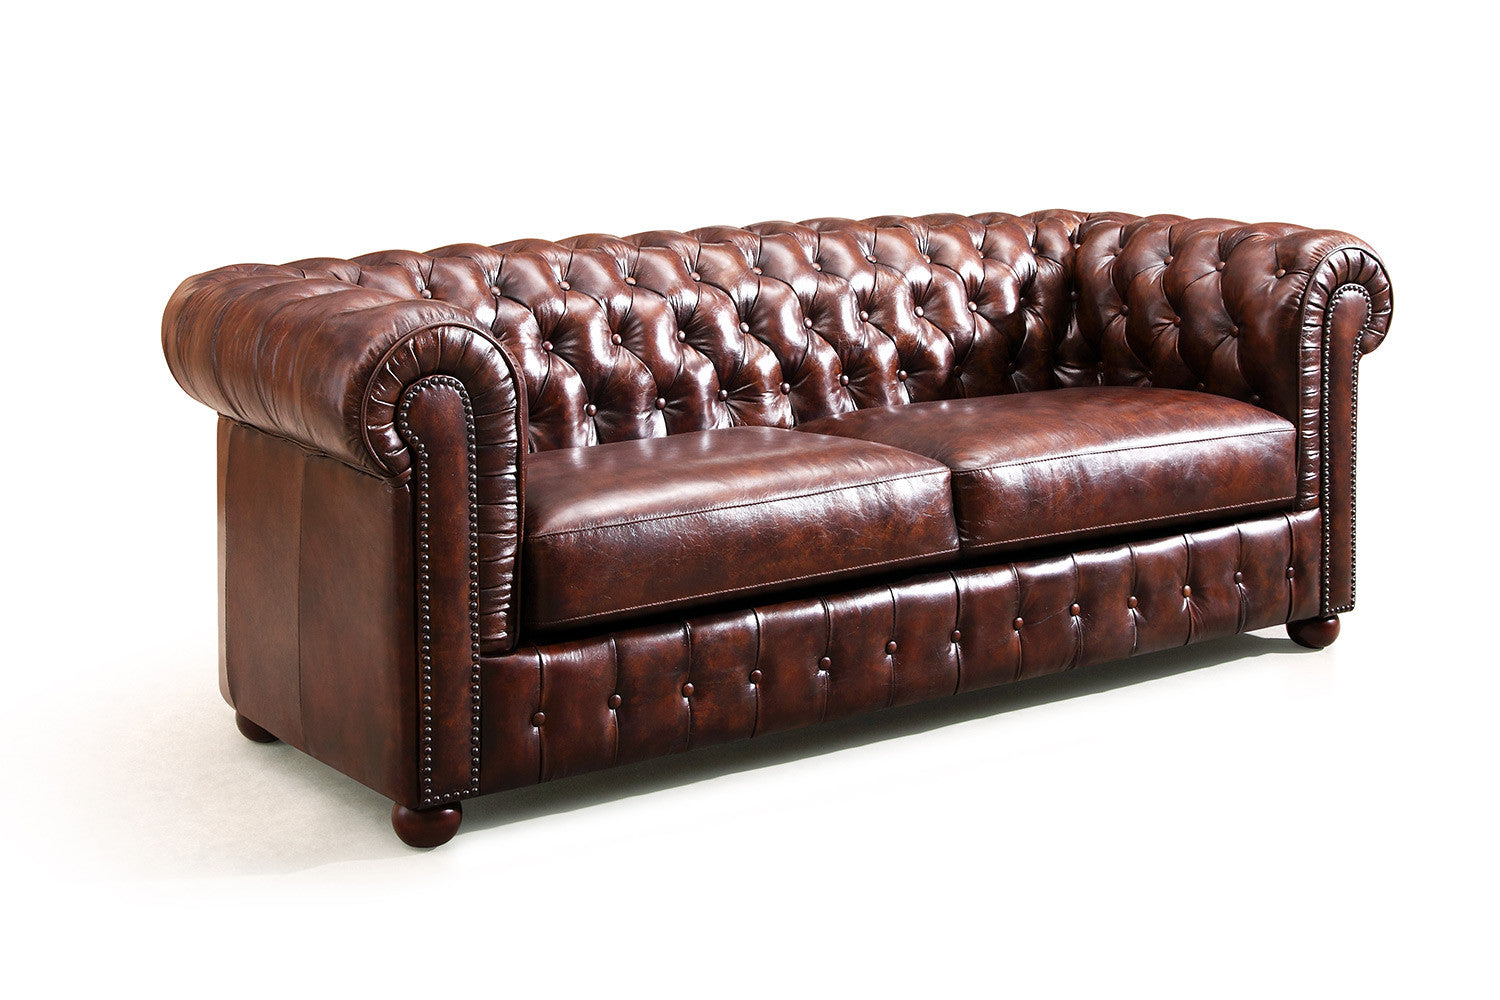 Canap chesterfield my blog - Canape capitonne chesterfield ...